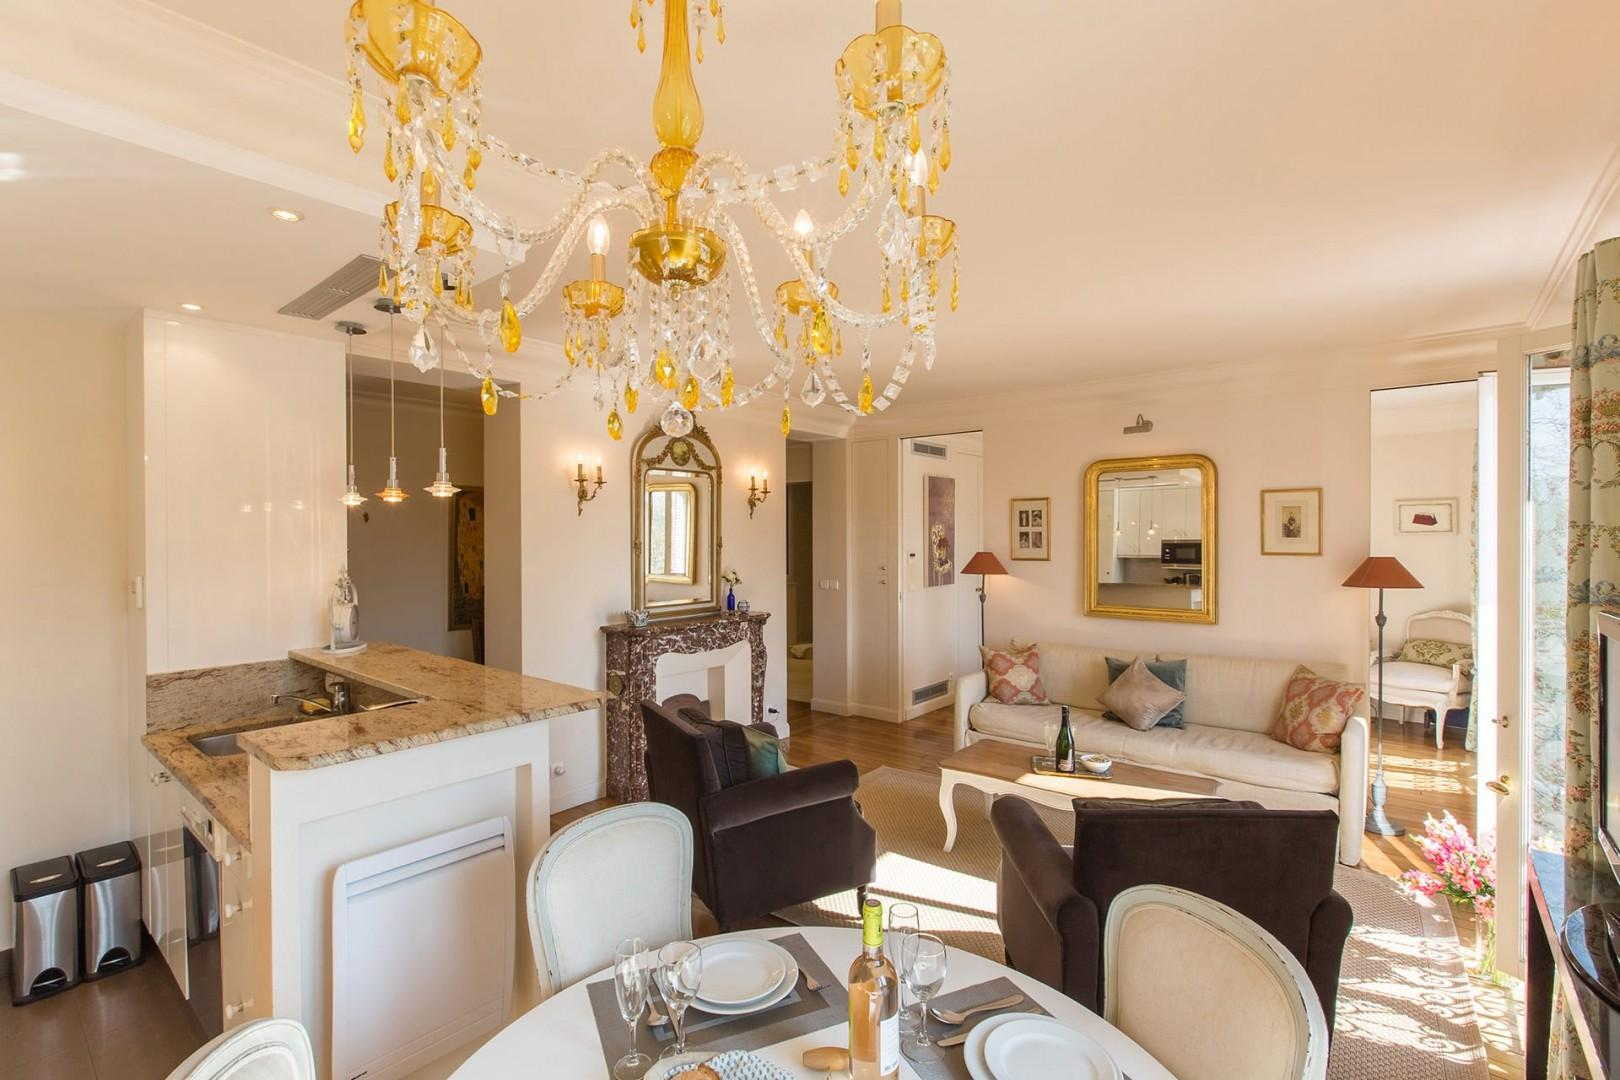 The open-plan dining room and kitchen are great for entertaining.